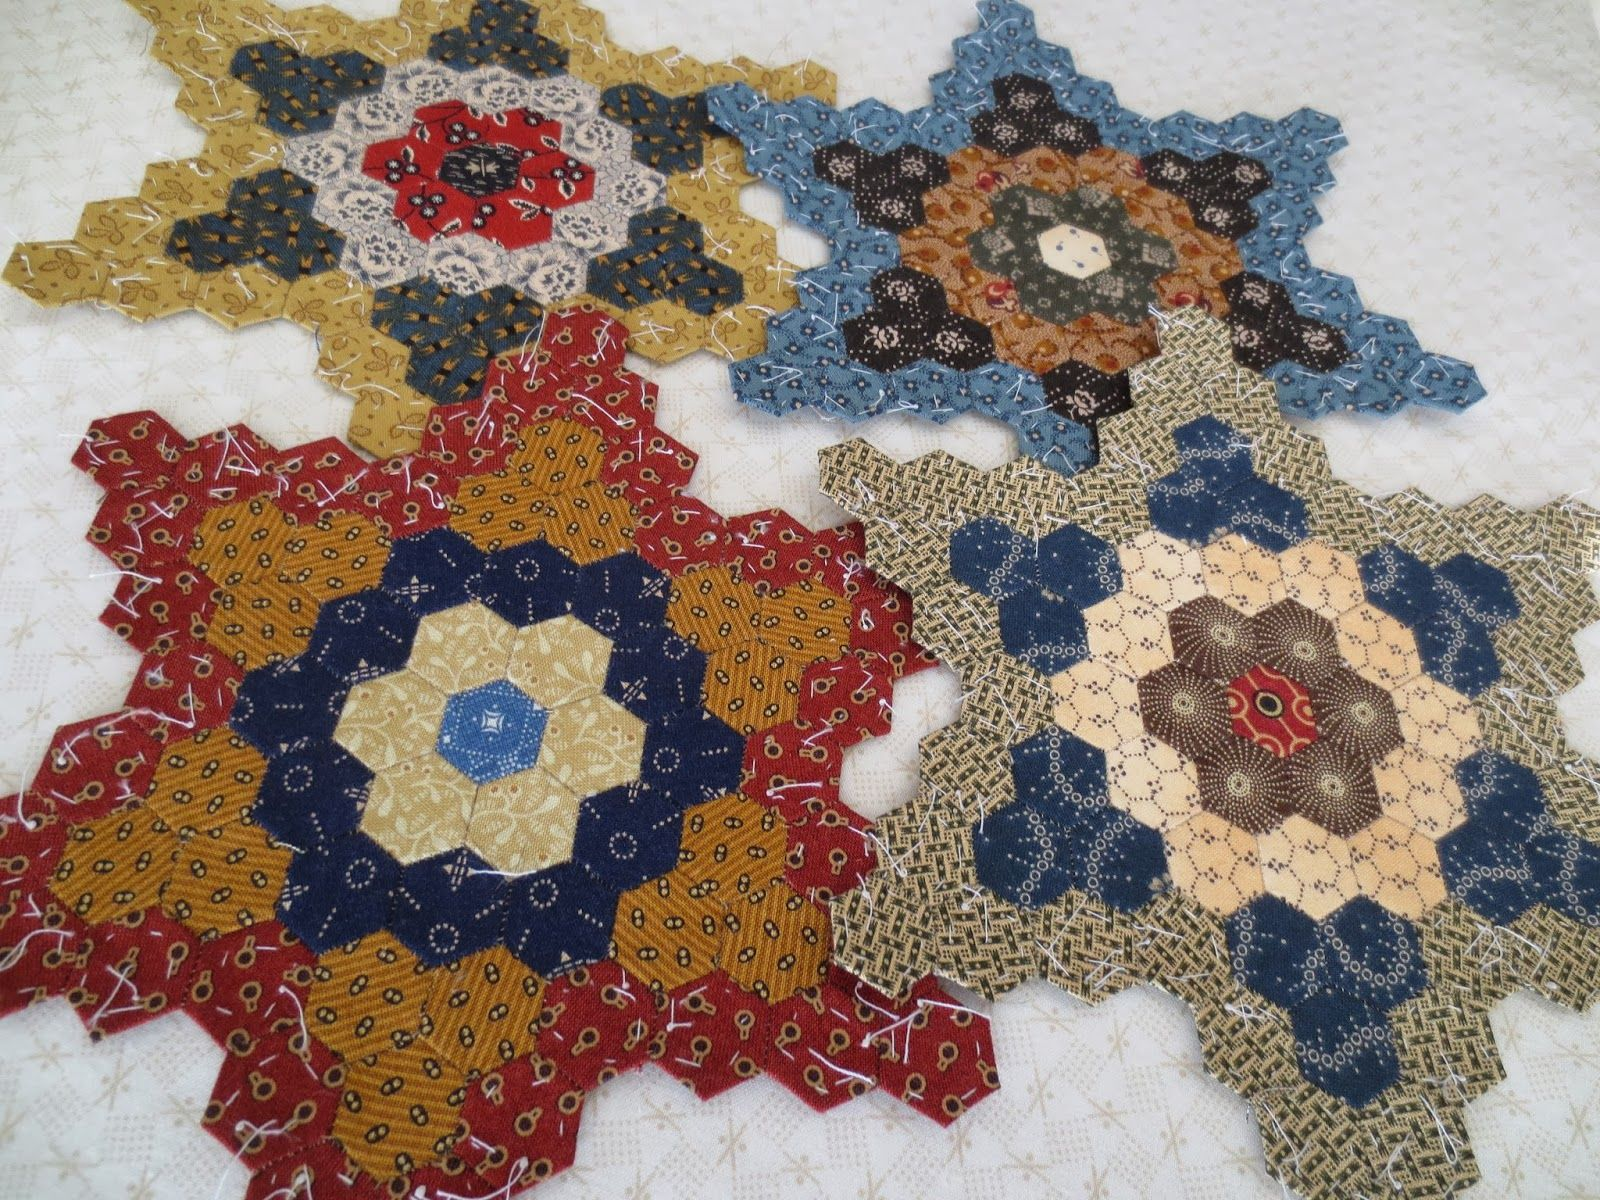 Kindred Quilts 4th Hexie Star pleted